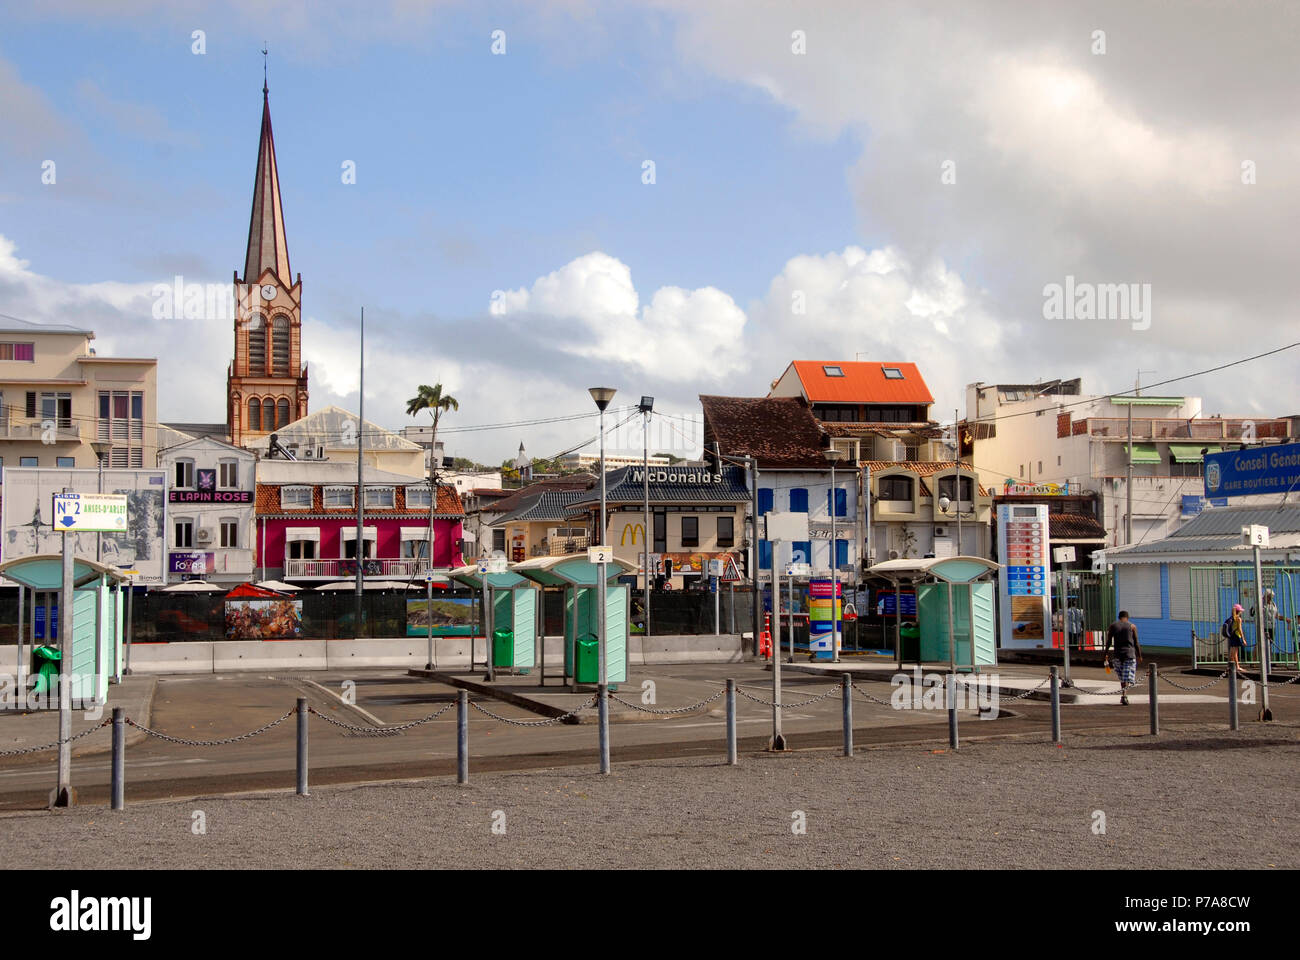 Harbor-side market area, Fort de France, Martinique, Caribbean, closed today as it is Sunday - Stock Image